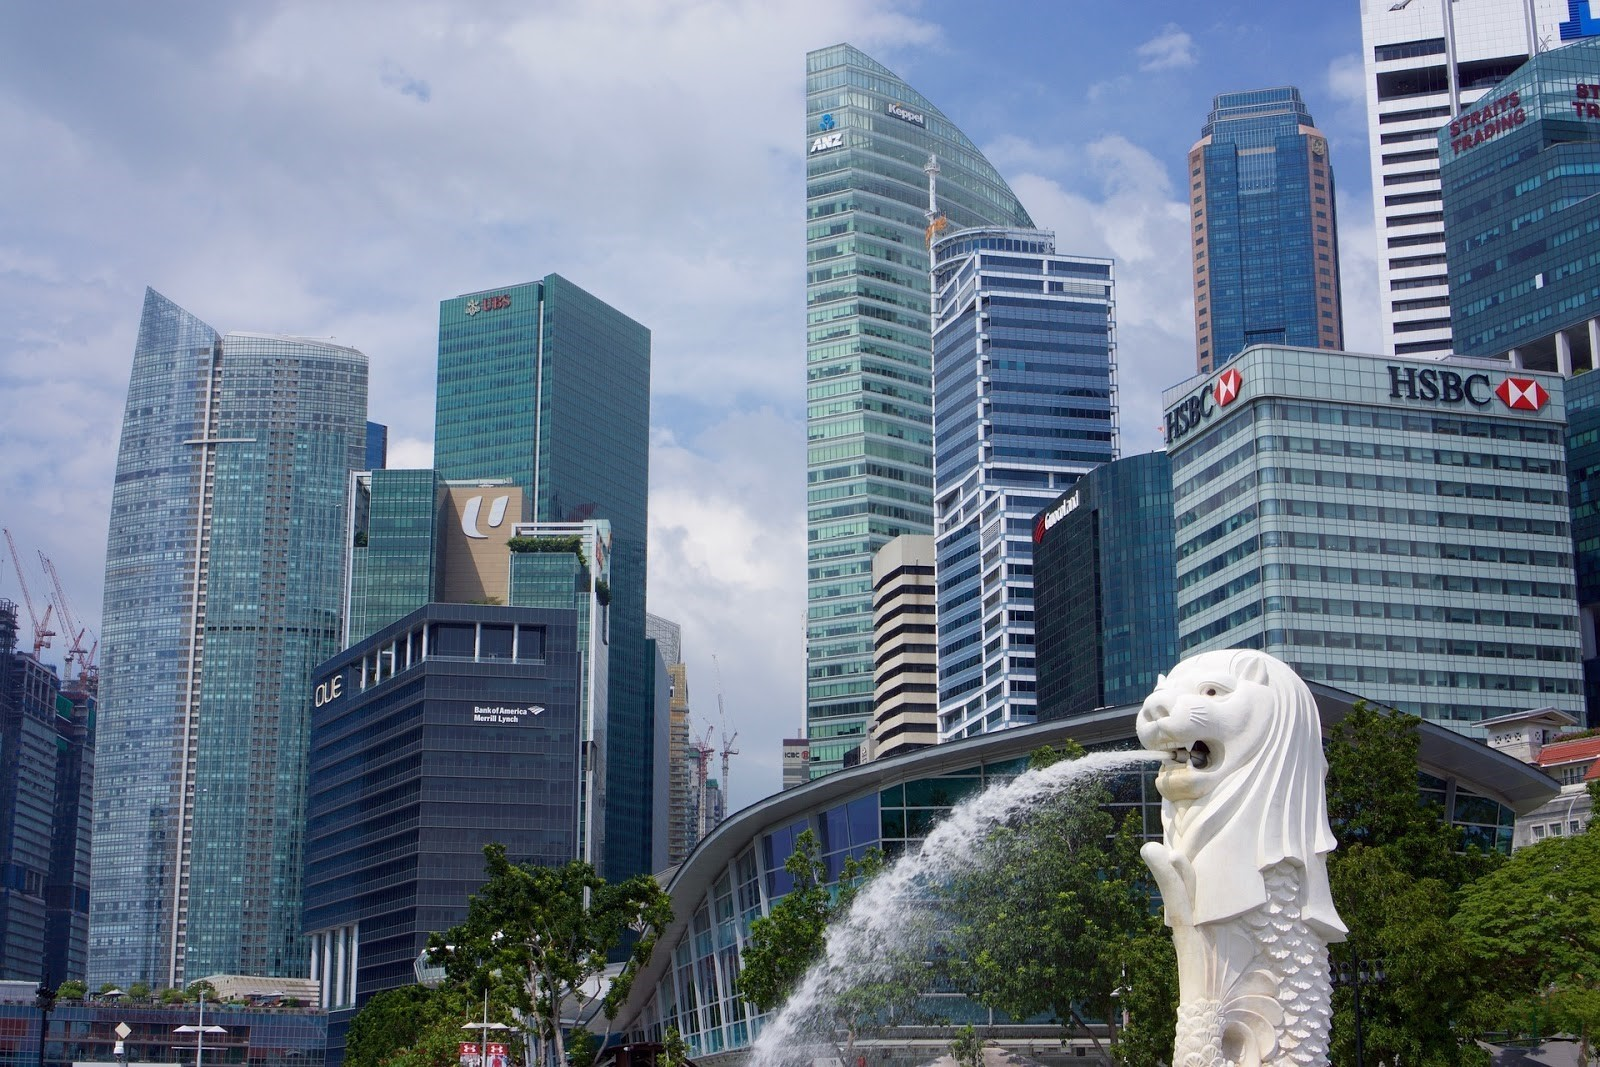 Singapore is riding a wave of growing tourist visits